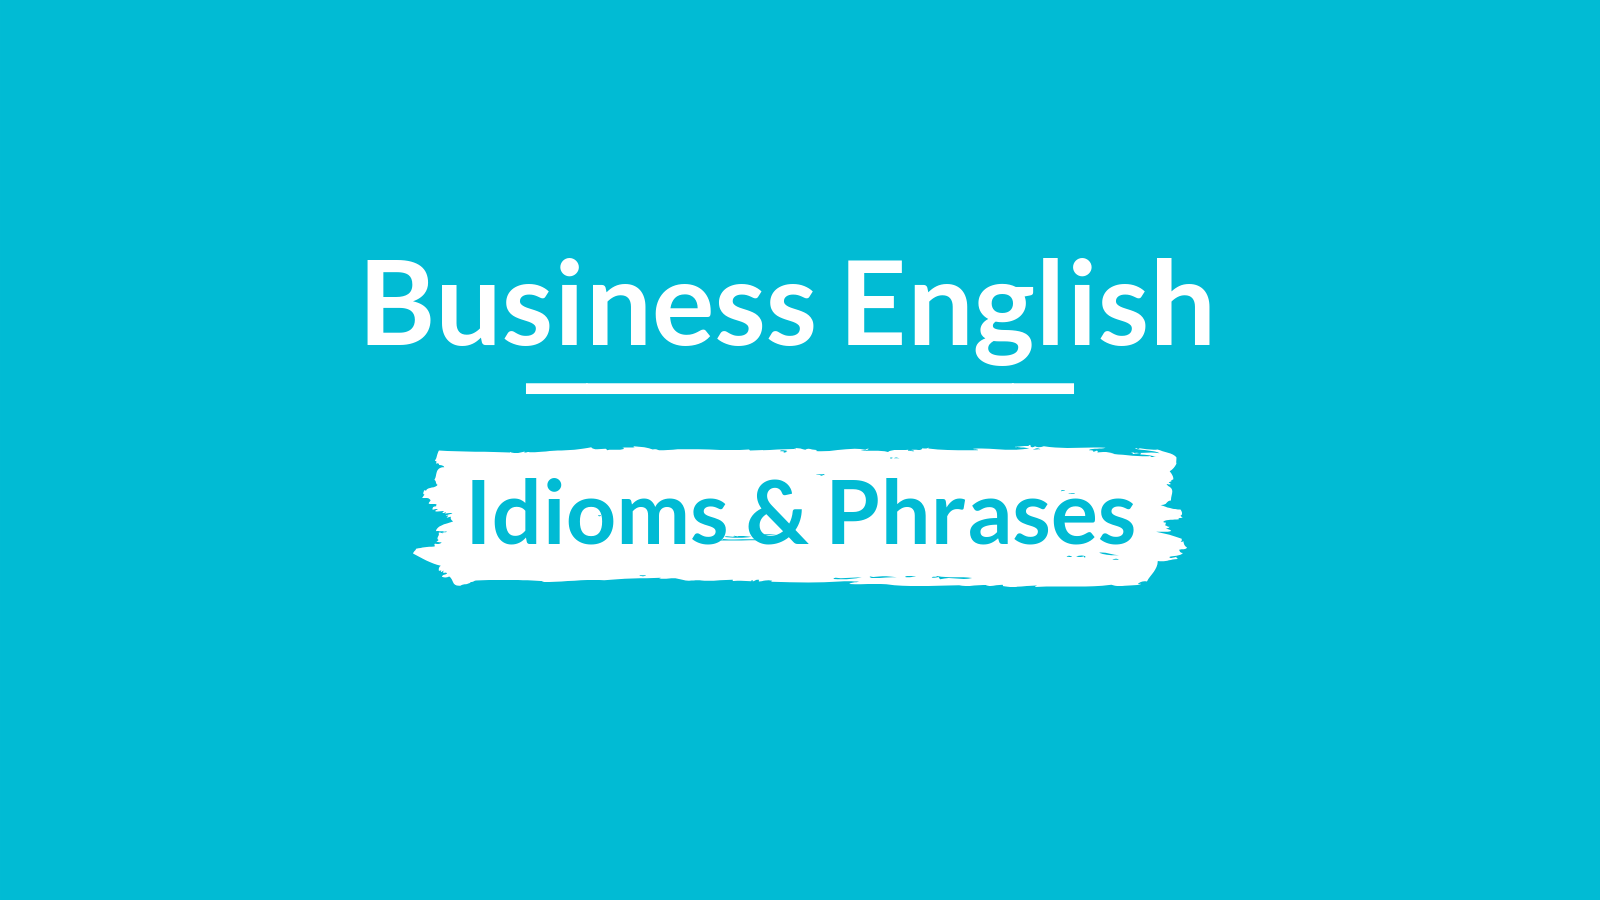 The Best Business English Idioms And Phrases You Absolutely Need